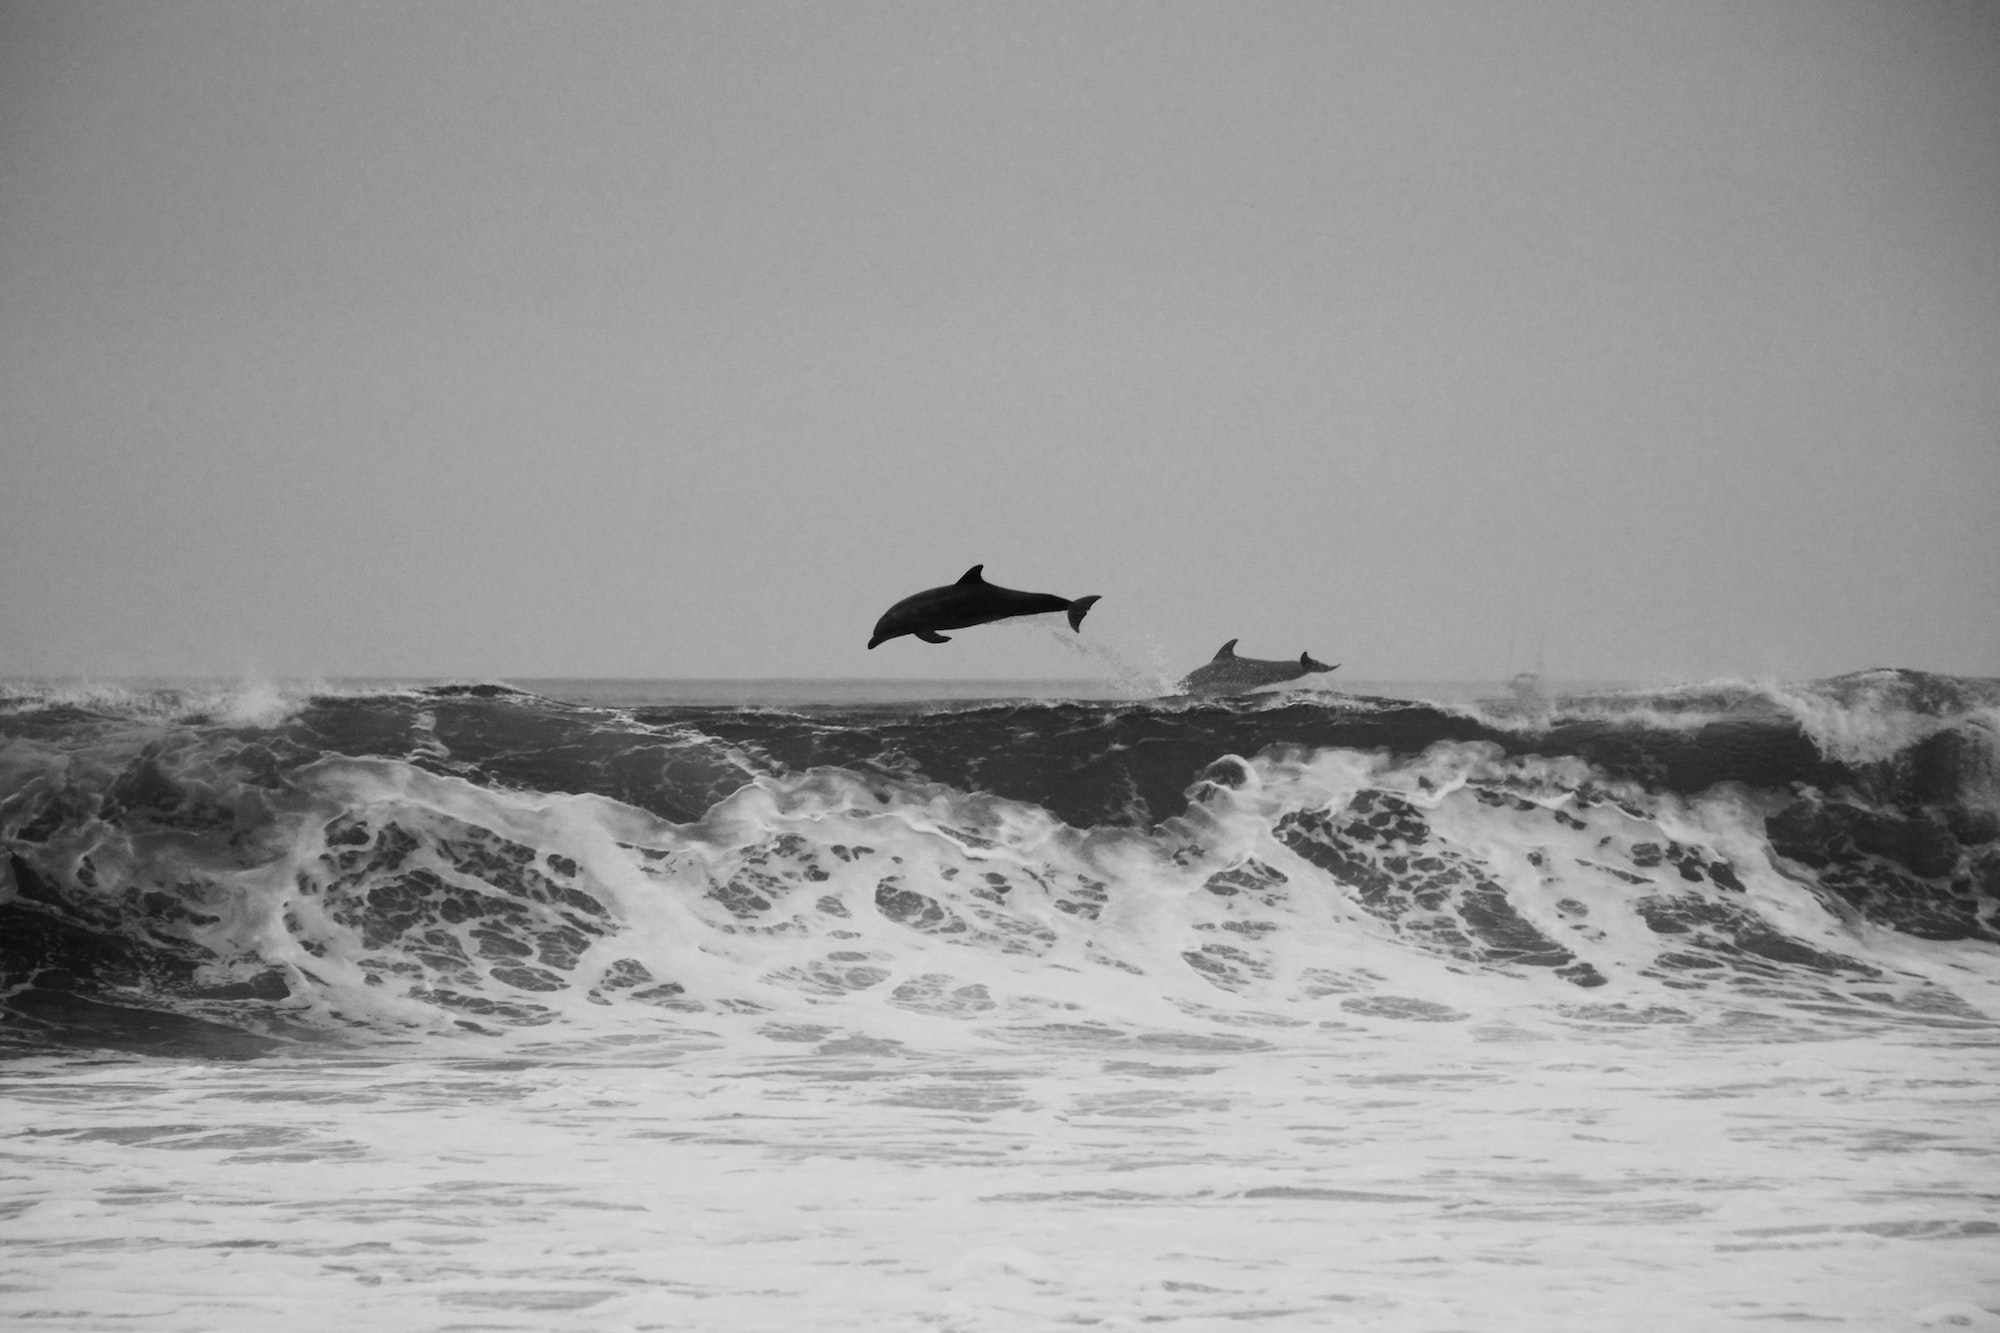 Dolphins playing in the waves